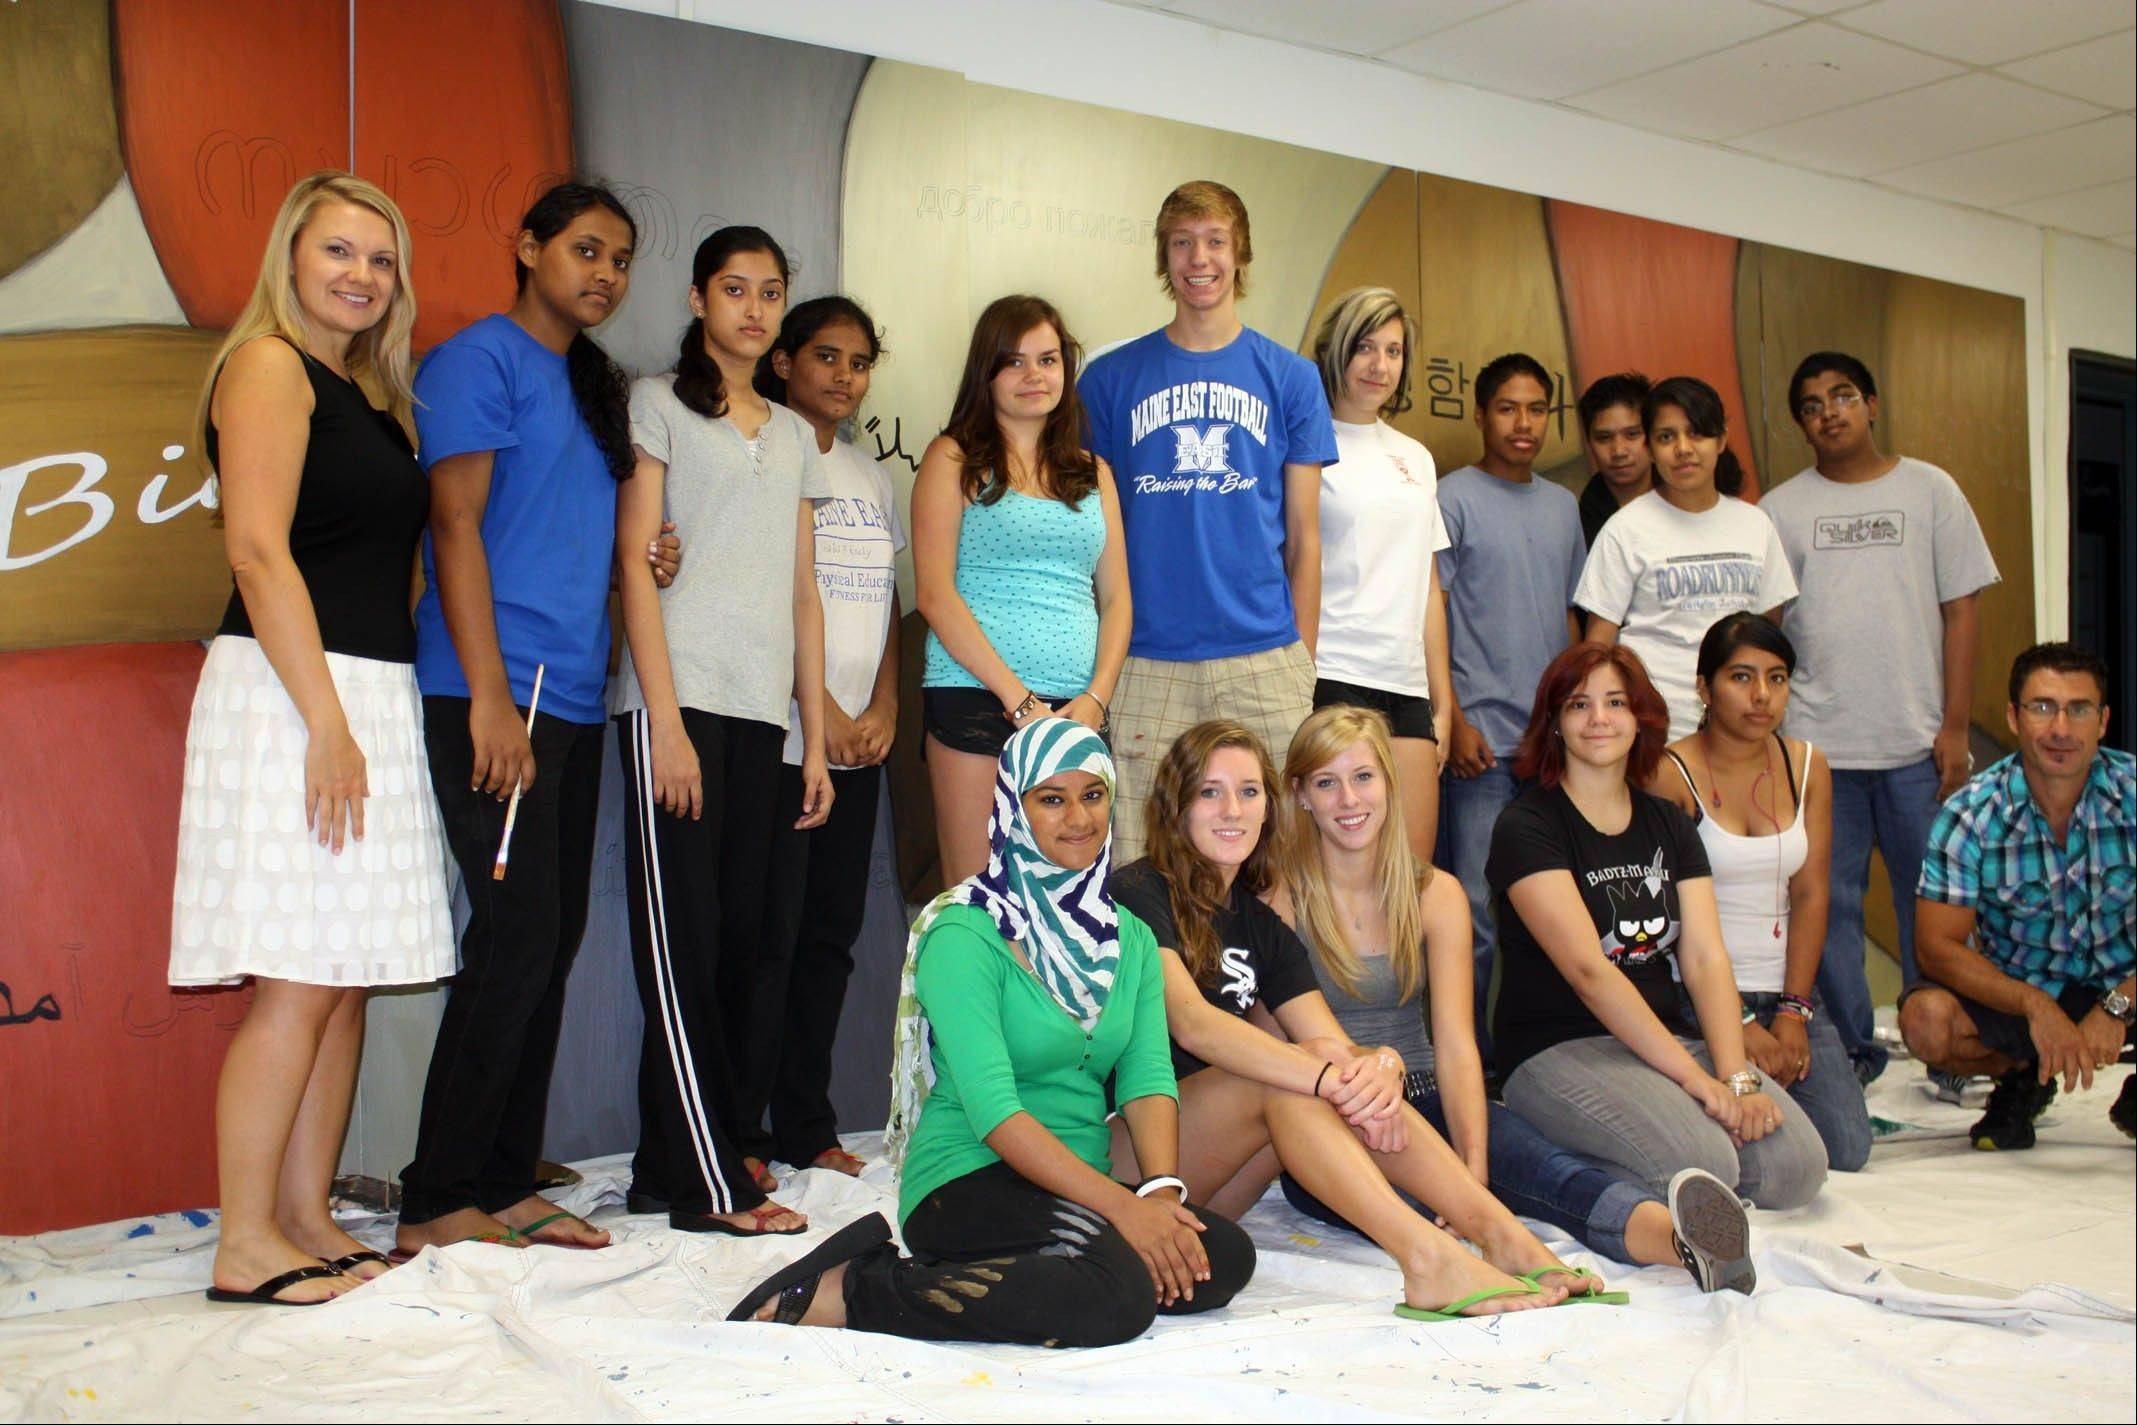 The team of Maine East students who worked on the mural, which is based on a Gino Savarino design.